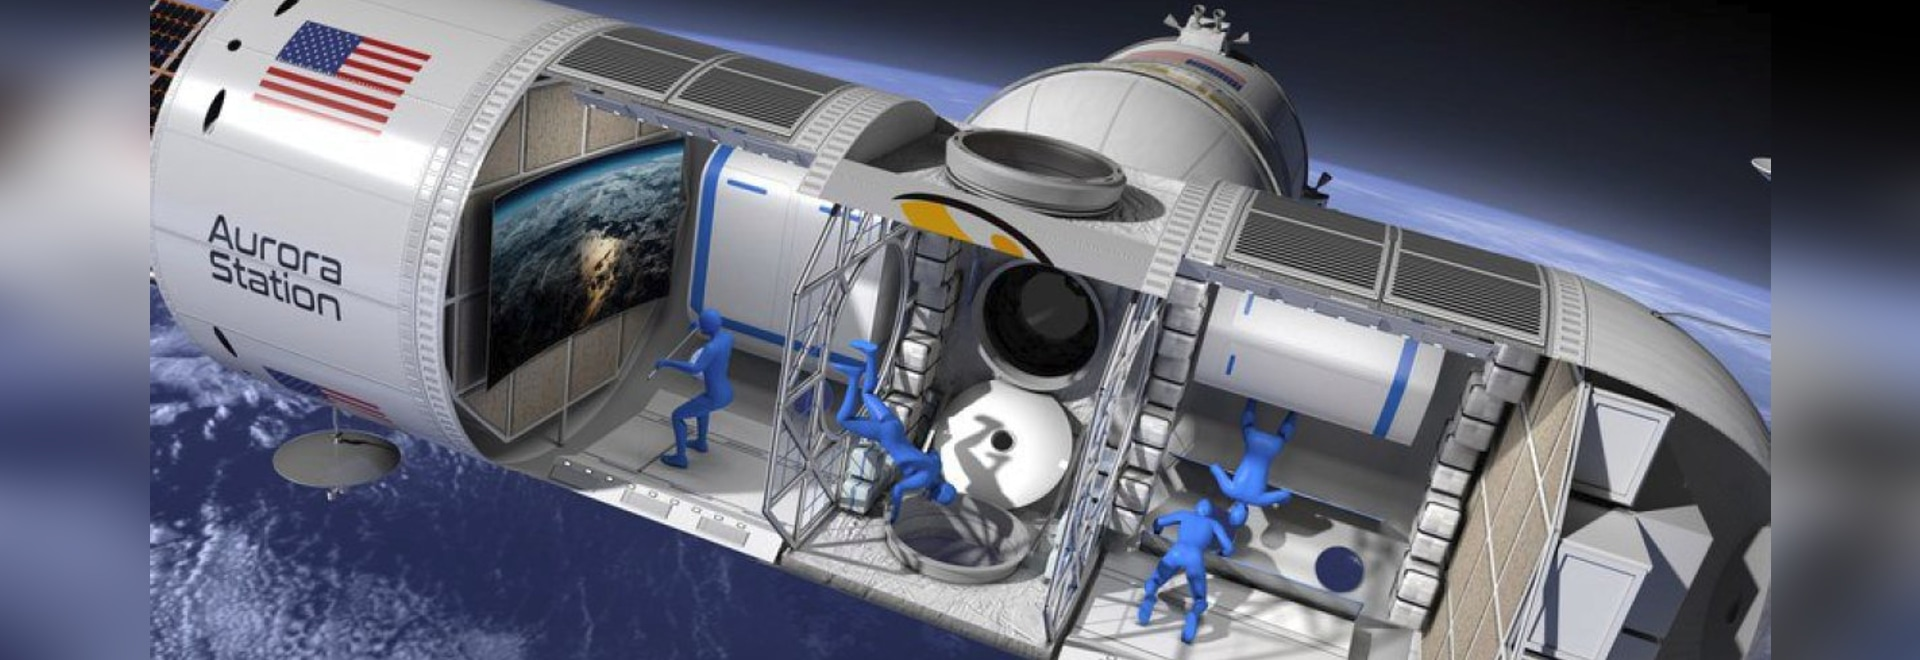 """Orion Span's Aurora Station will launch in late 2021, with the first guests going up to stay in the world's first luxury space hotel in early 2022. """"It will replicate an authentic astronaut experie..."""